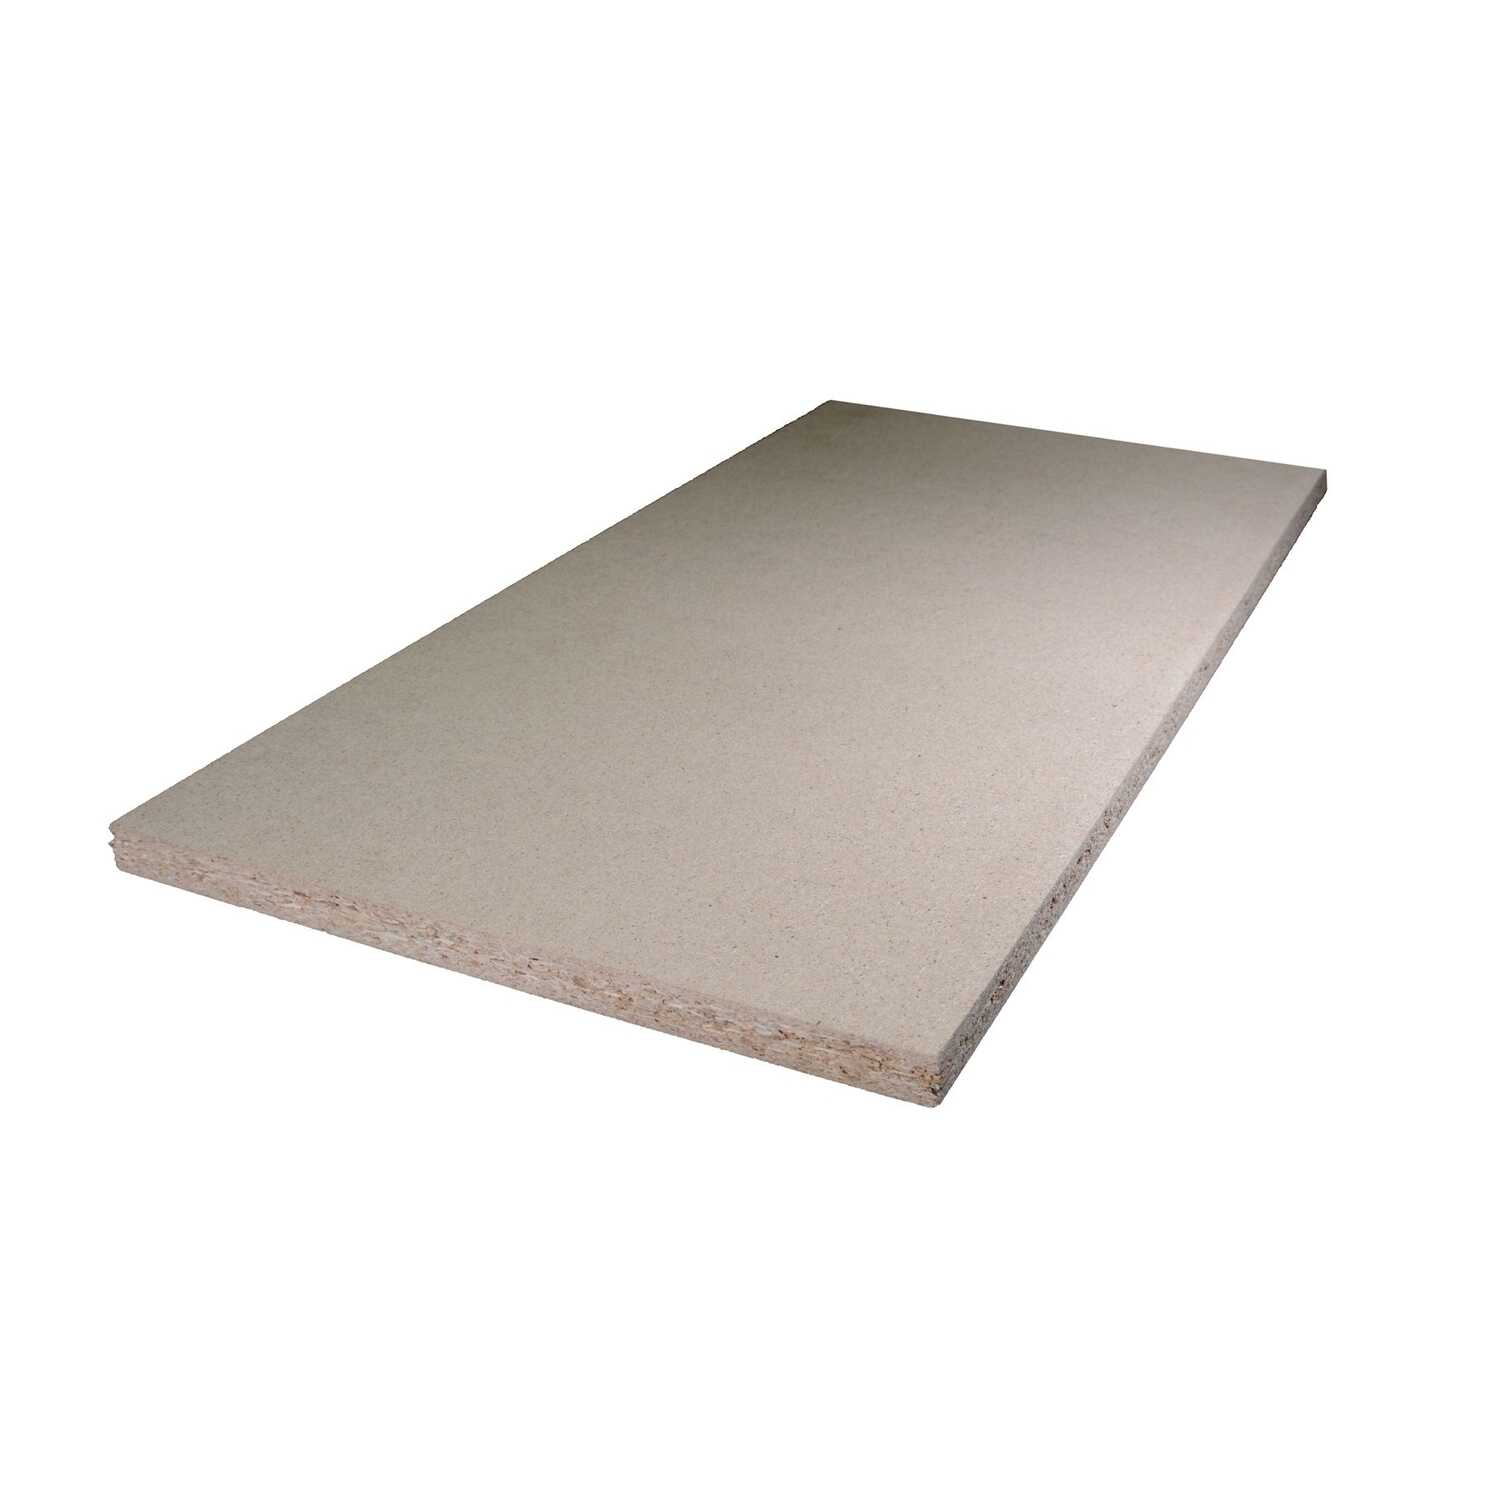 Alexandria Moulding  Particle  3/4 in.  x 0.75 in.  x 12 in. W x 1 ft. W x 8 ft. L Particle Board